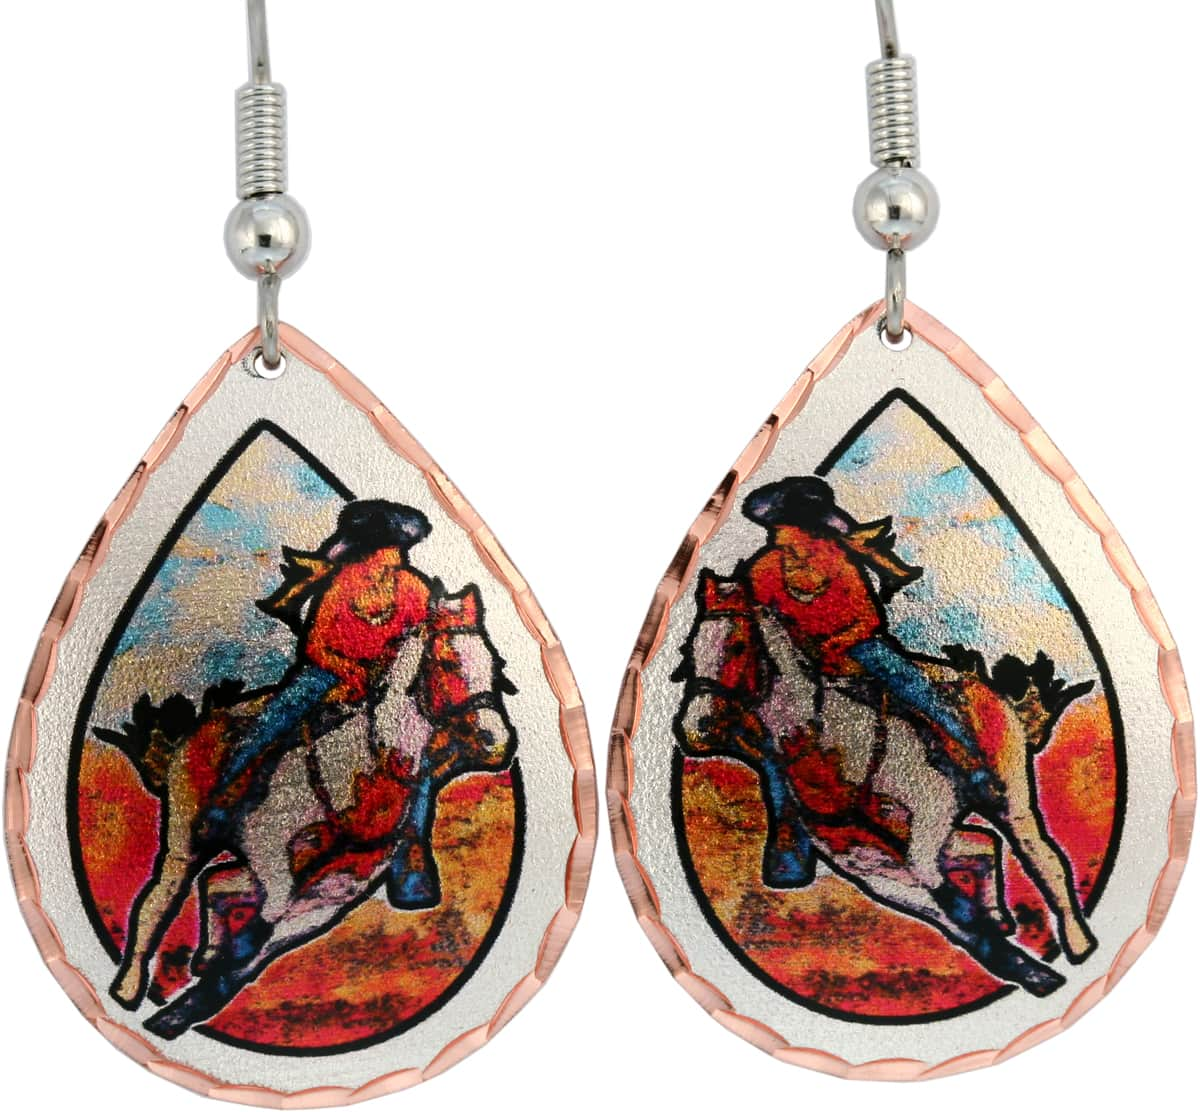 Cowgirl barrel racer earrings perfect choice for women who love western fashion